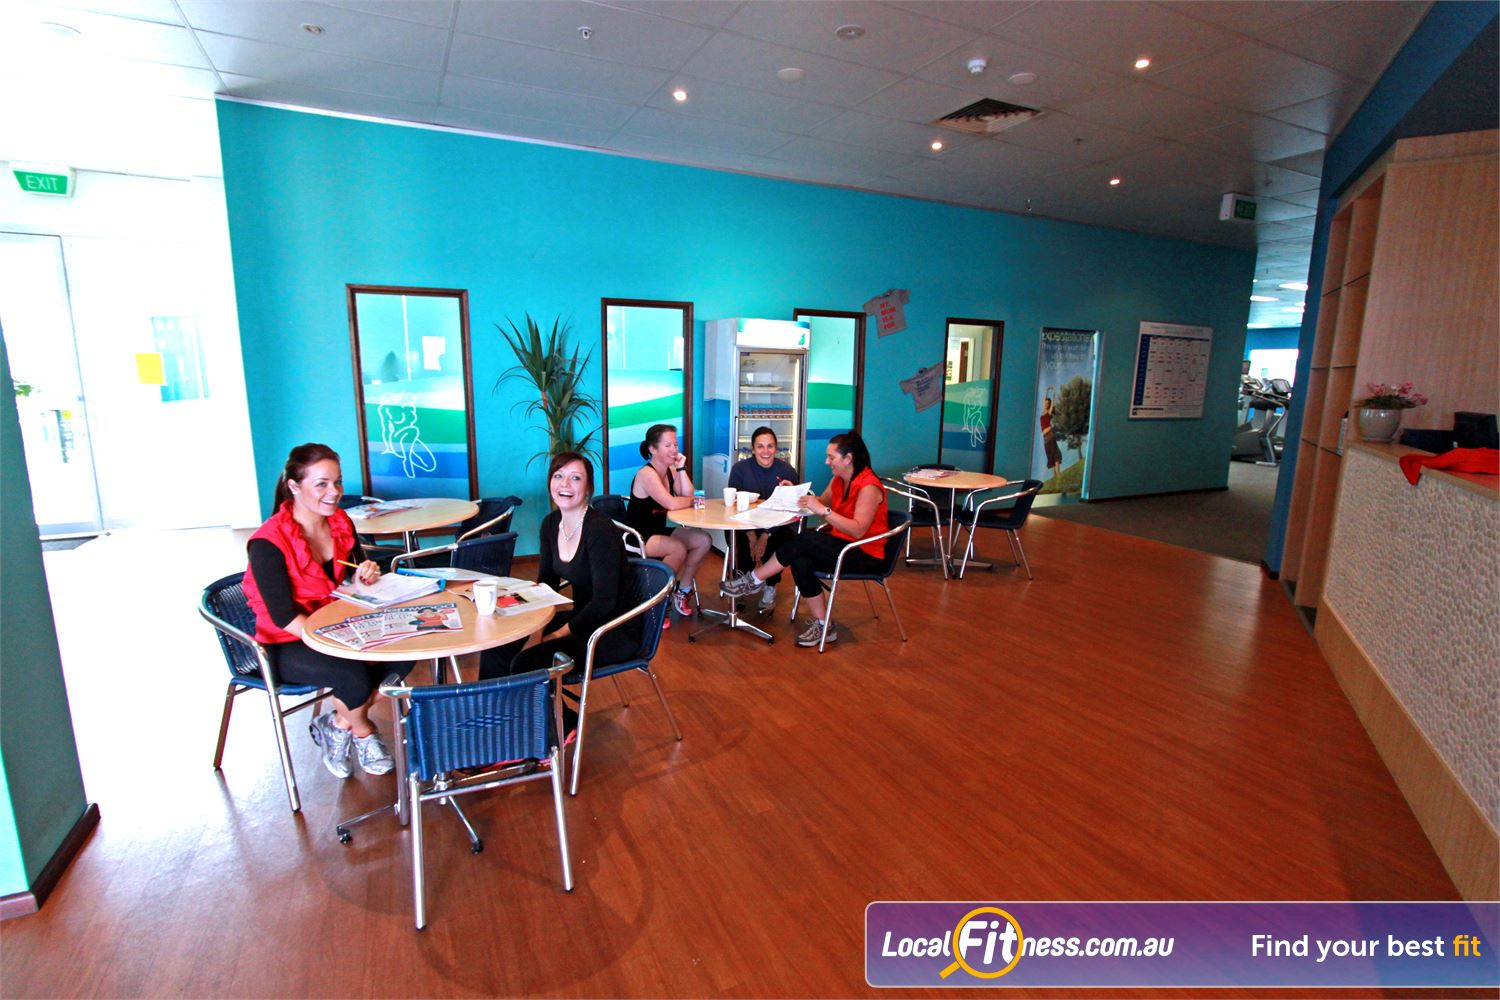 Fernwood Fitness Gungahlin Your own special place to unwind at Fernwood Gungahlin.